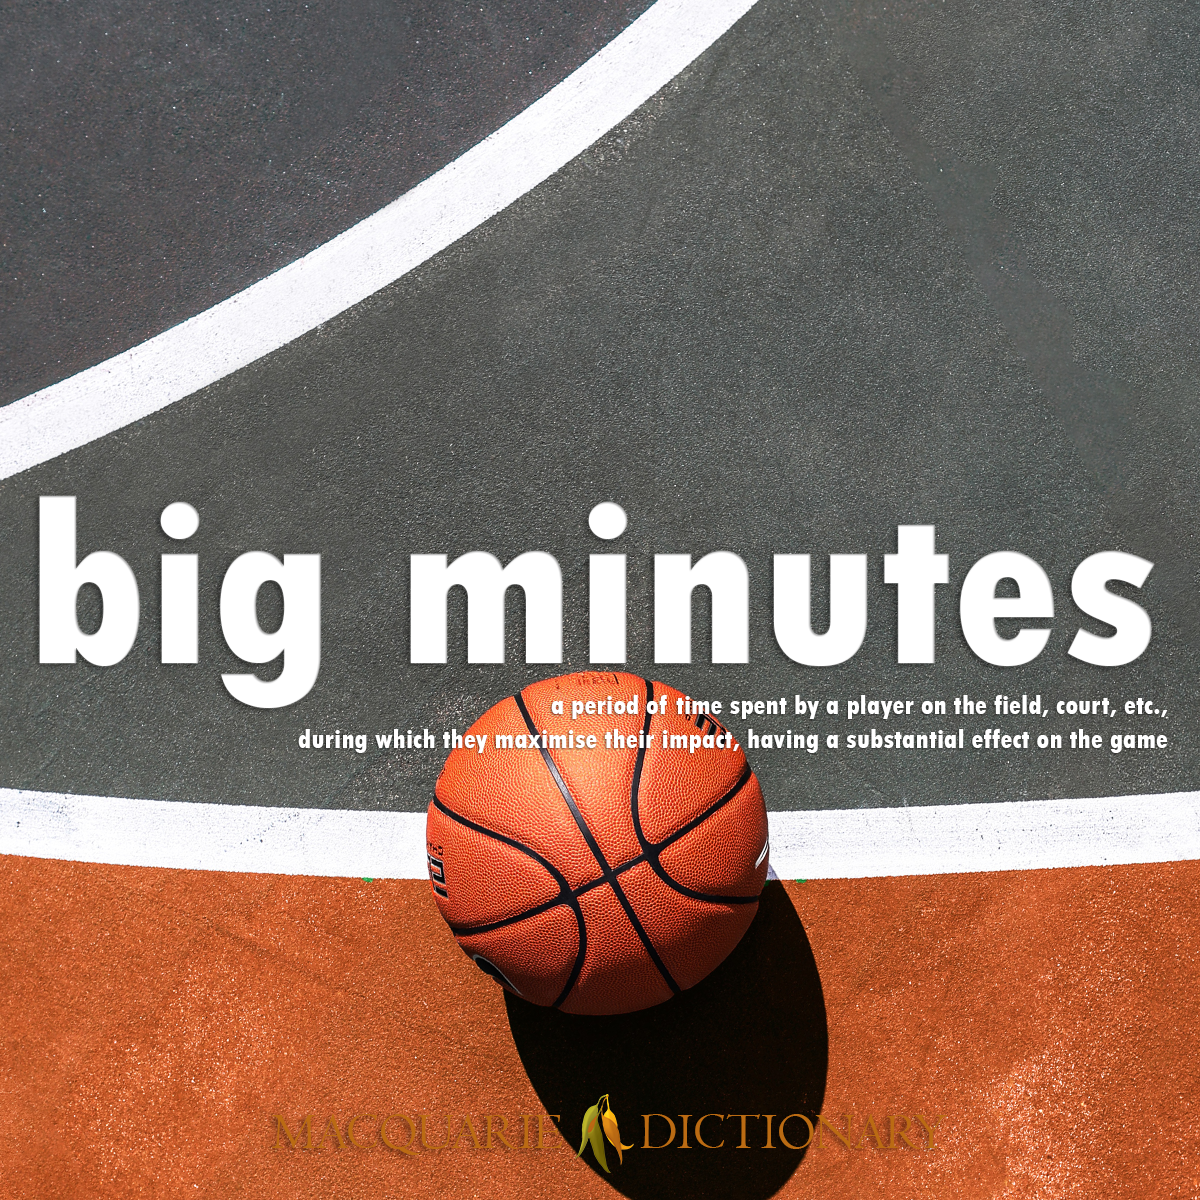 Image of Macquarie Dictionary Word of the Year - big minutes - a period of time spent by a player on the field, court, etc., during which they maximise their impact, having a substantial effect on the game